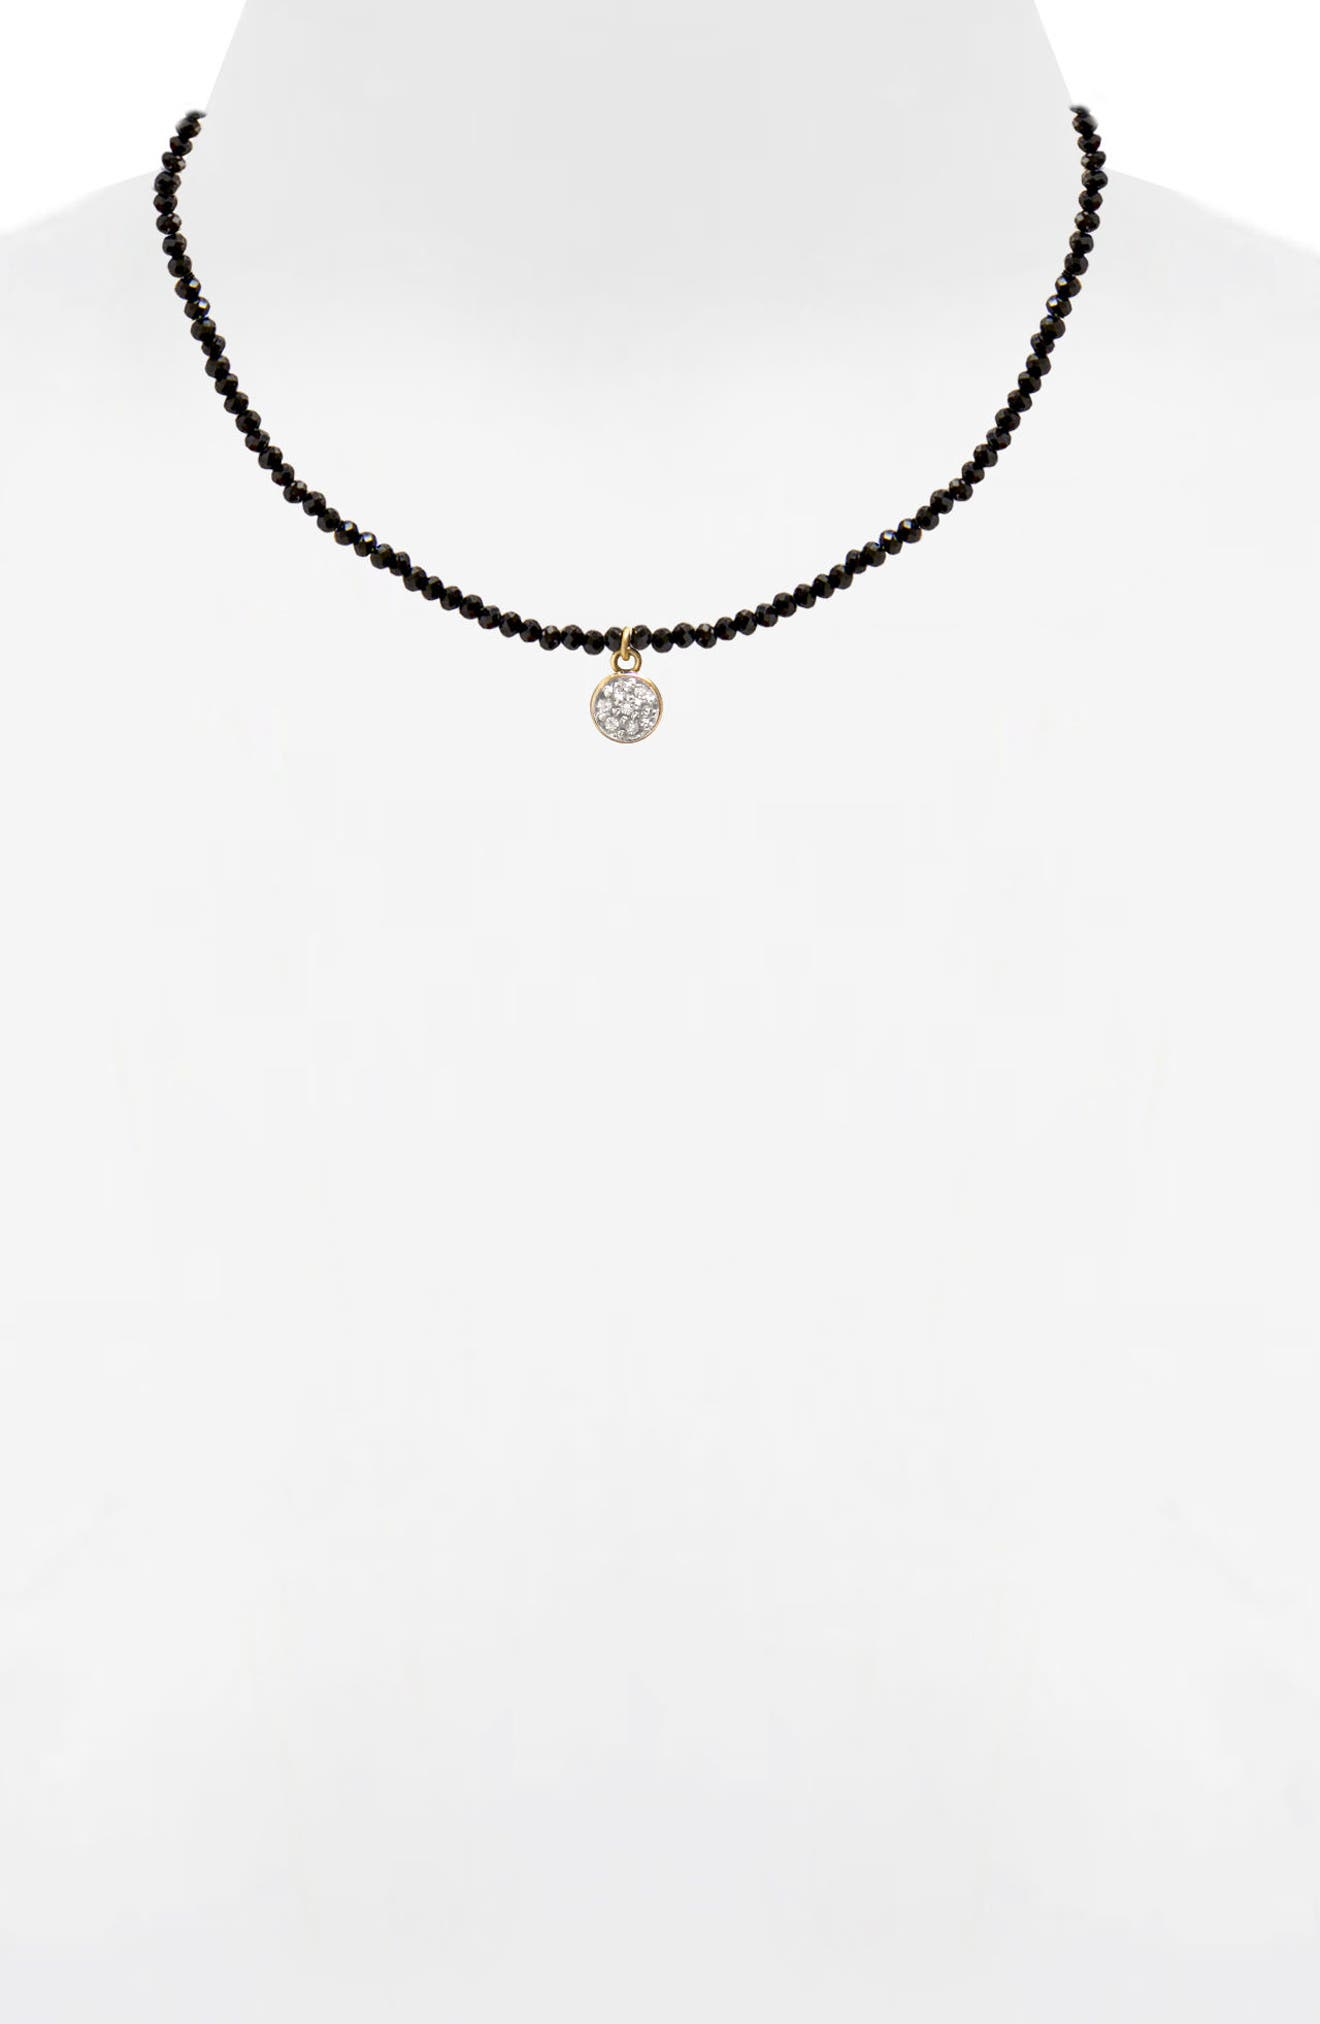 Jane Basch Diamond Circle Pendant Necklace,                             Alternate thumbnail 2, color,                             BLACK ONYX